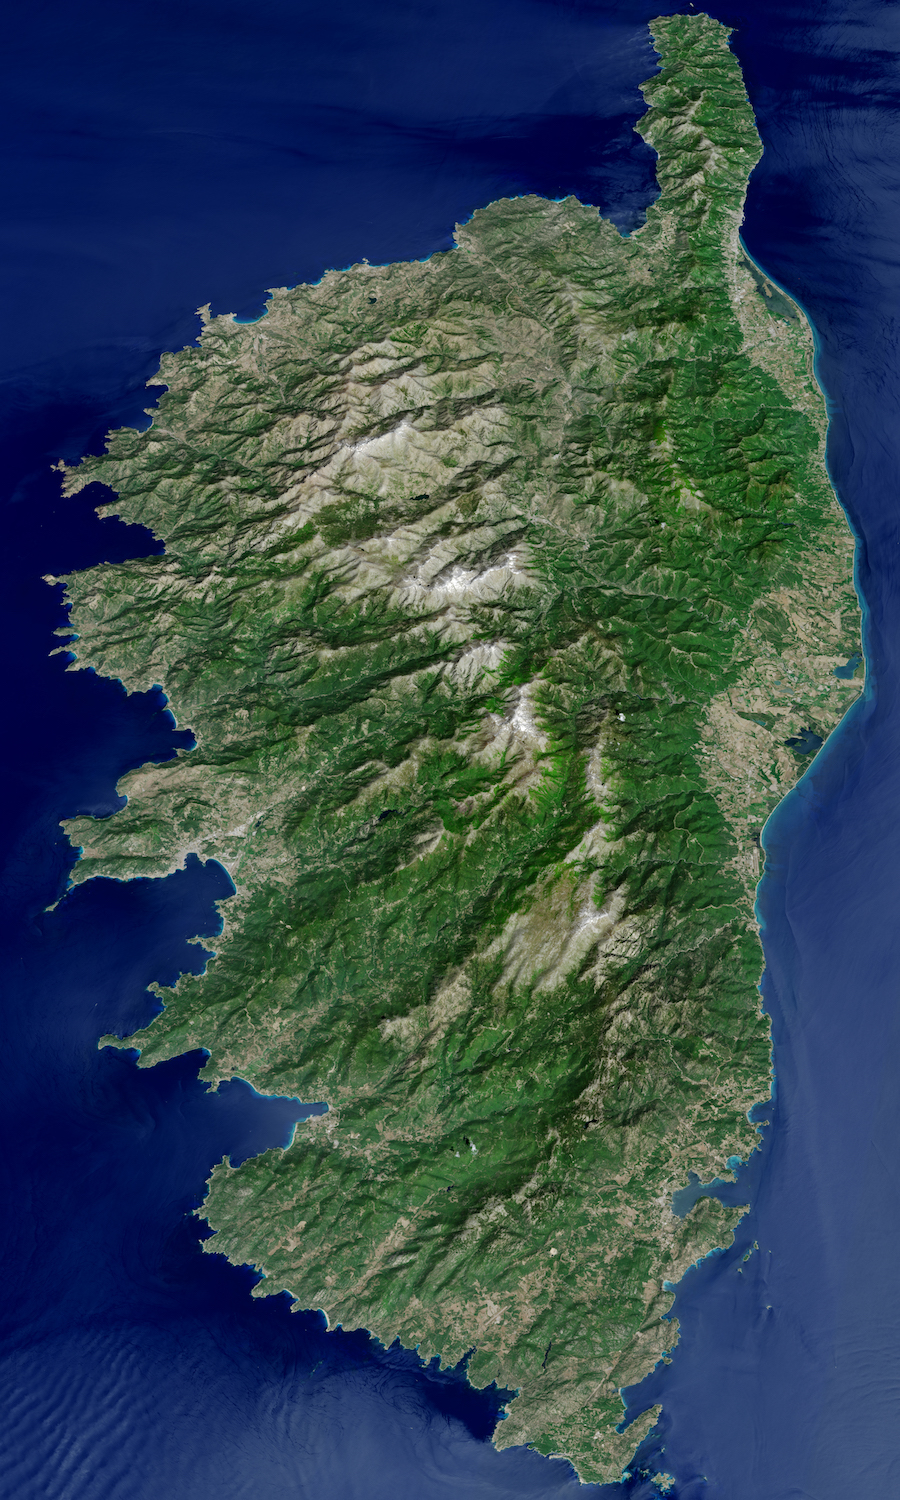 Today's Image of the Day comes courtesy of the NASA Earth Observatory and features a look at the island of Corsica in the Mediterranean Sea.